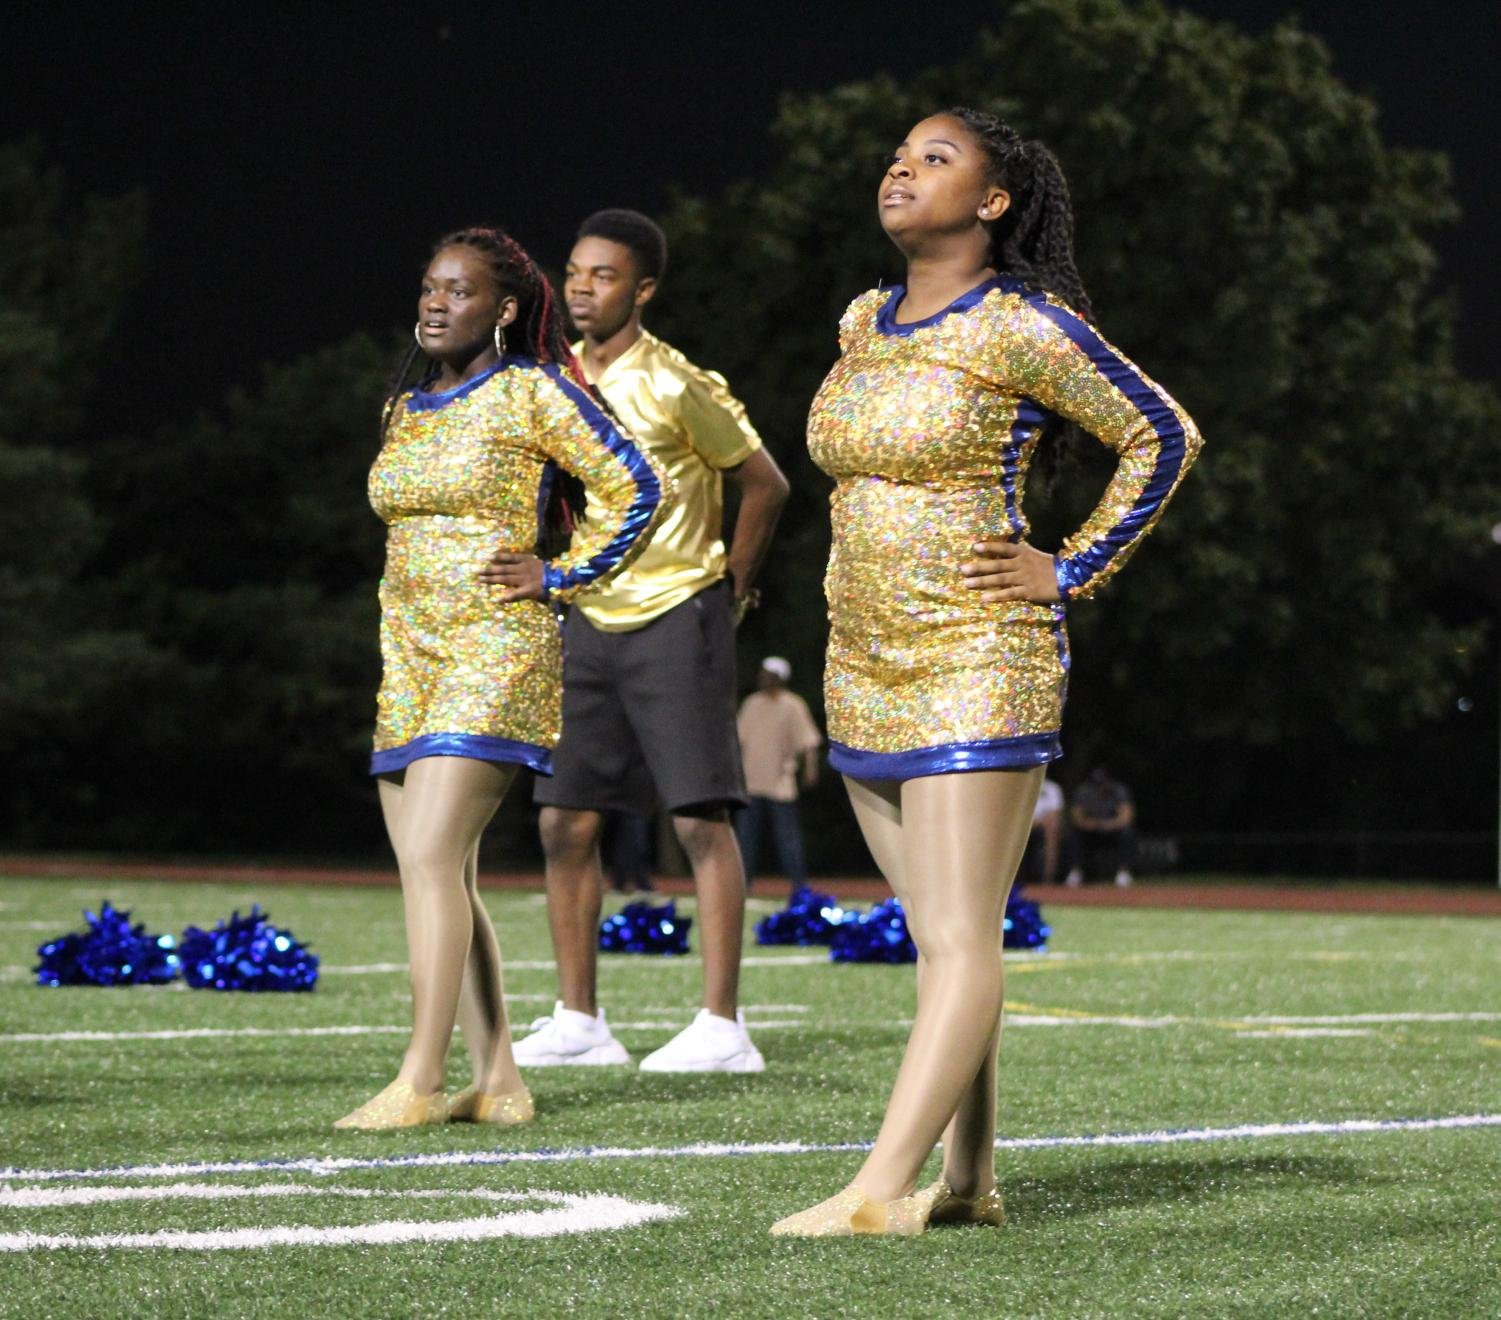 Kayleah Turner, 12, Daevian Danner, 10, and Alisha Russell, 11, stand in place ready to start their dance. Photo by Caitlin Pieters